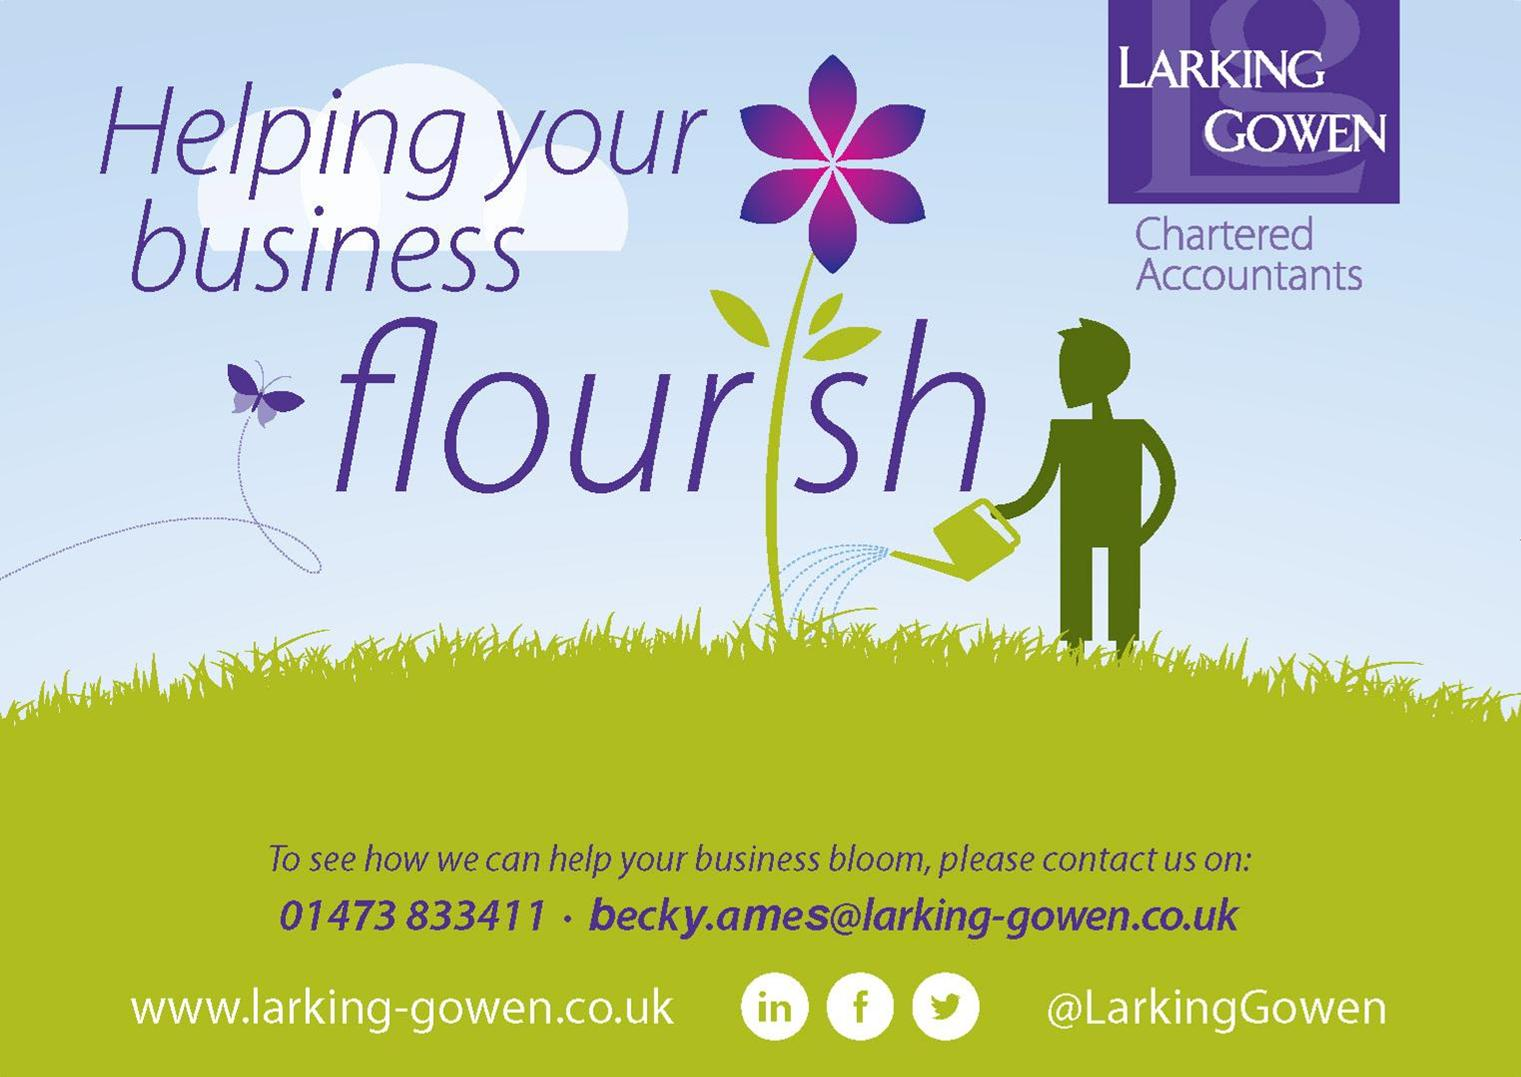 Larking Gowen, Chartered Accountants